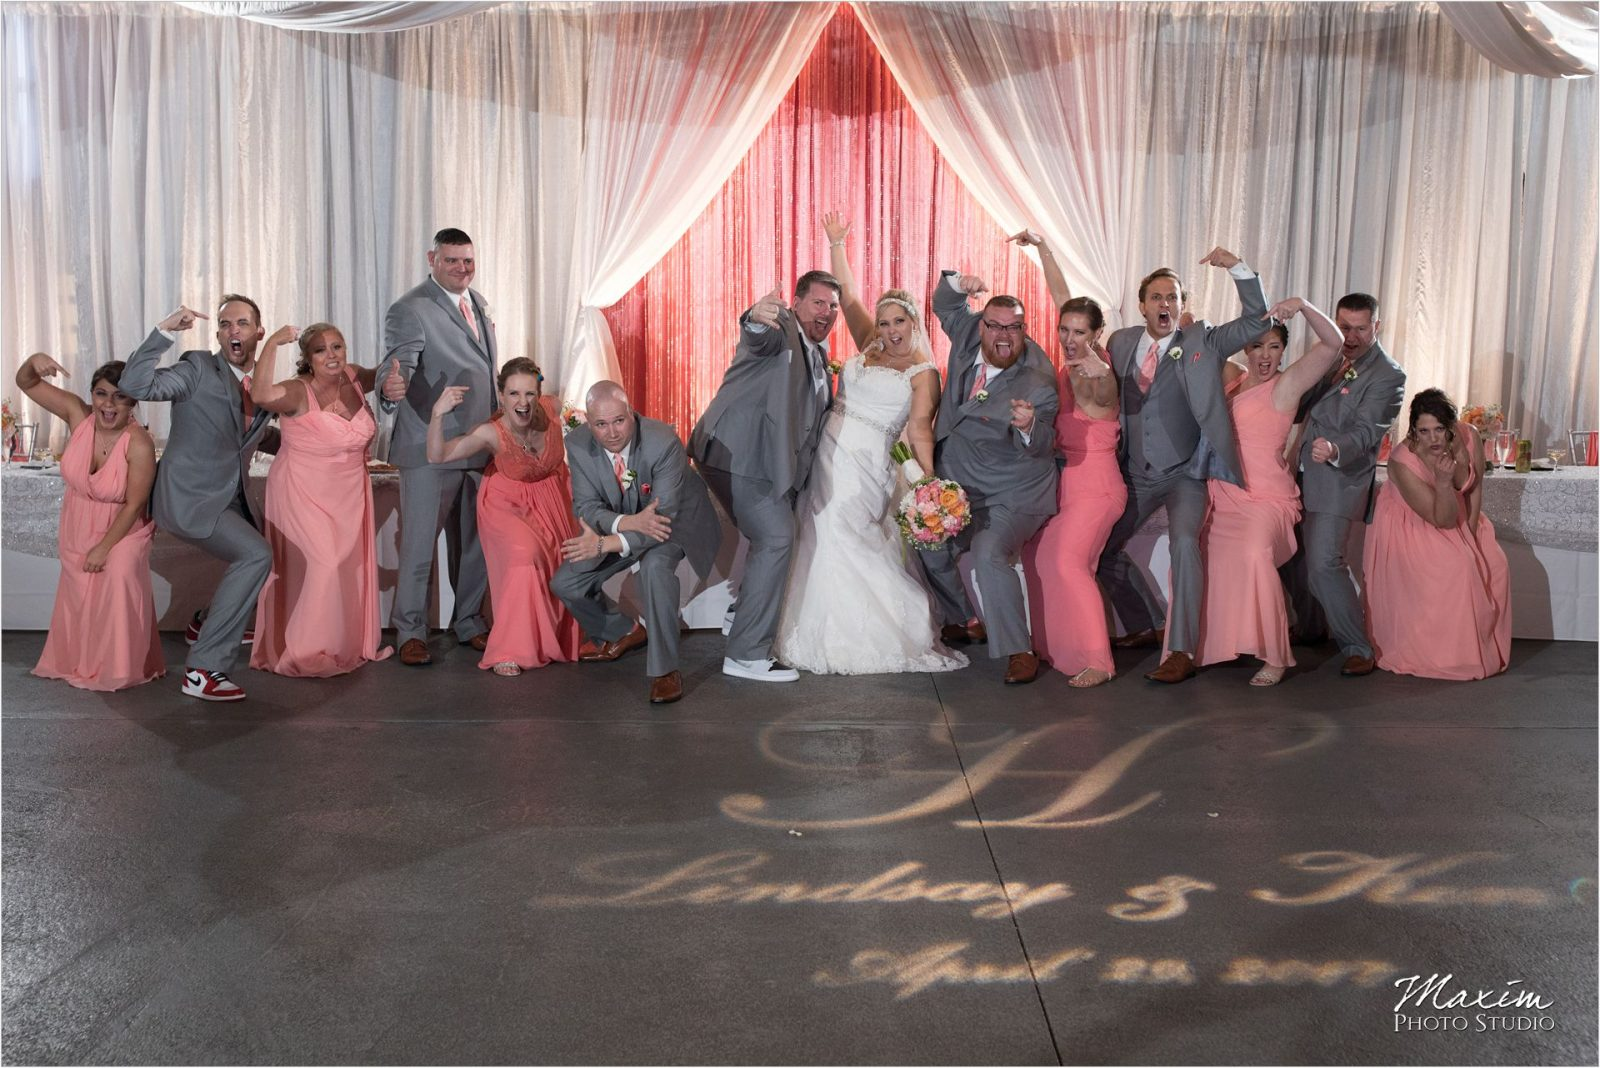 Top of the Market Dayton Ohio Wedding Reception bridal party